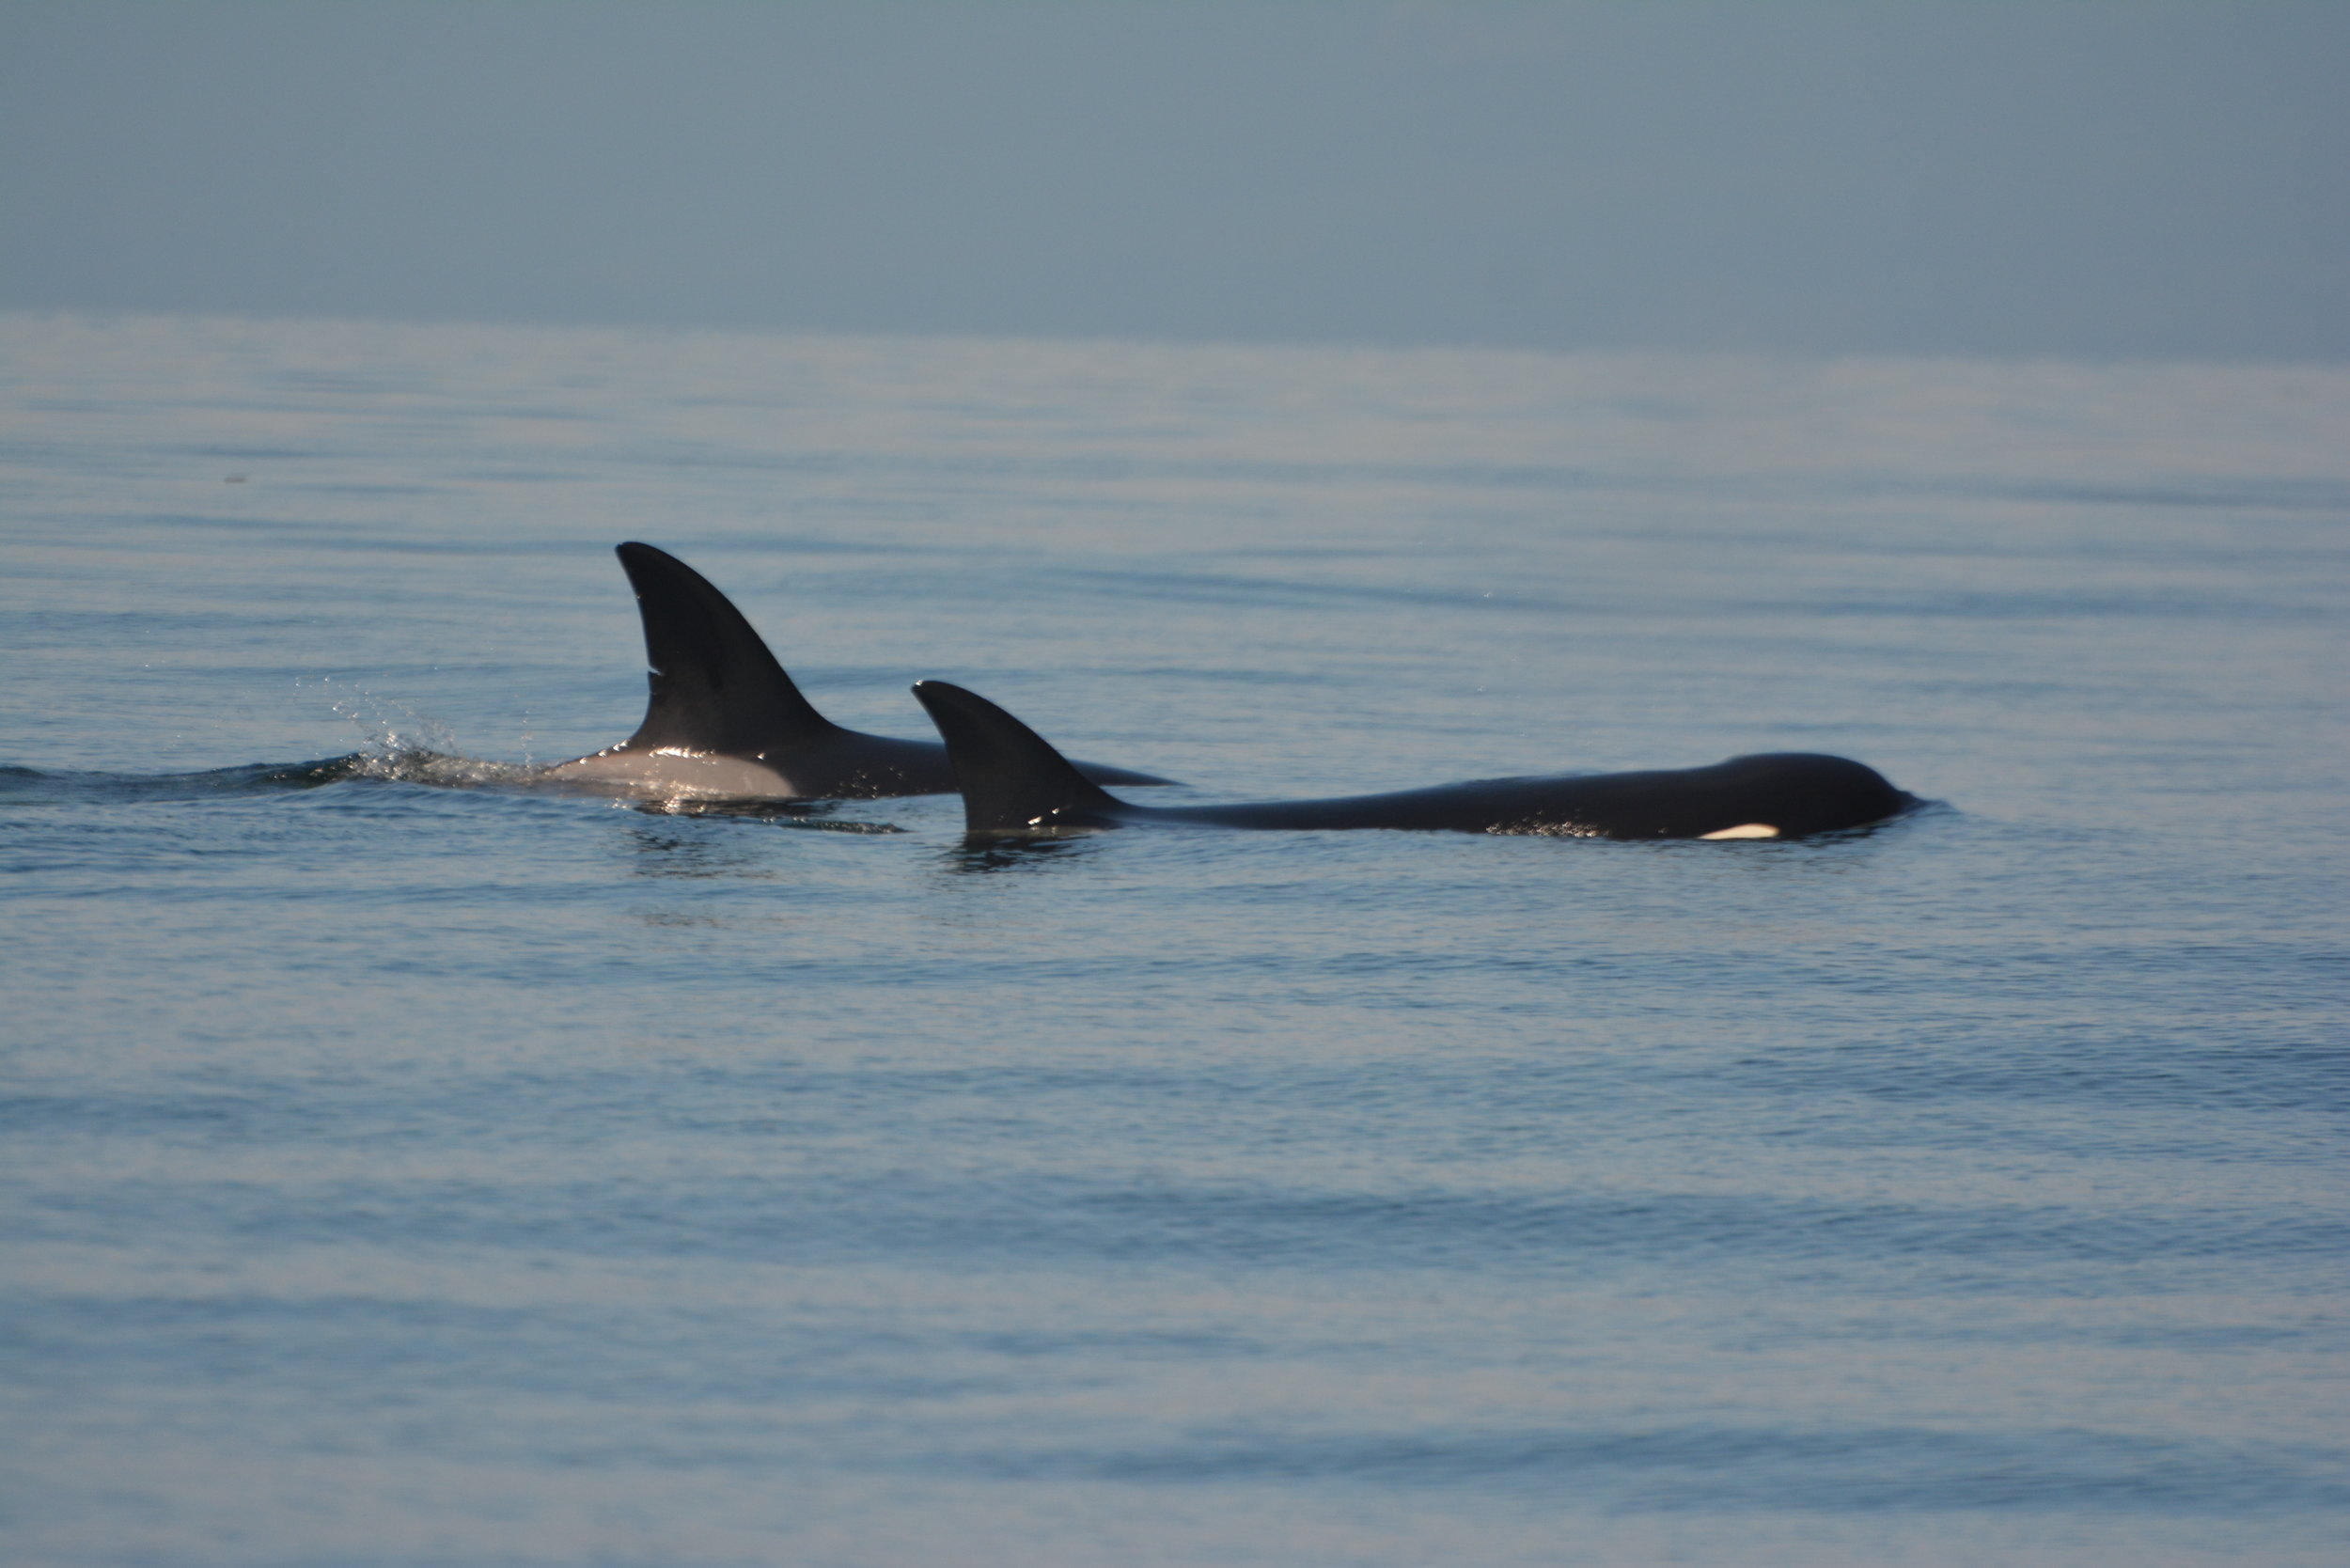 T36A1 in the background, notice the nick halfway down the dorsal fin! Photo by Val Watson.